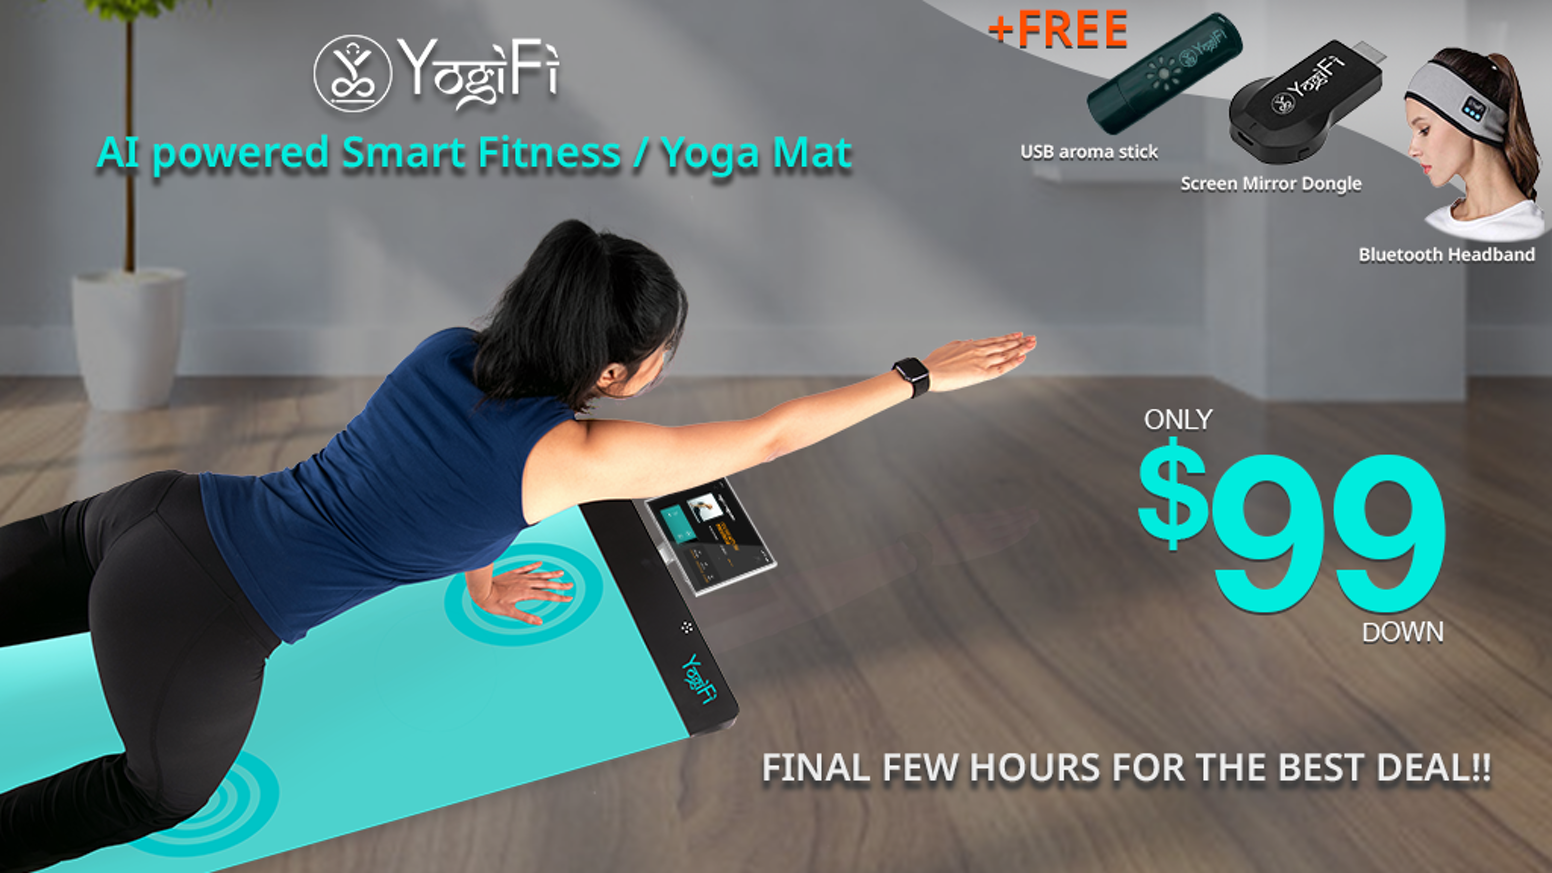 An Interactive Fitness Mat that provides guided instructions and real-time corrections on your form/poses, for yoga and other workouts.